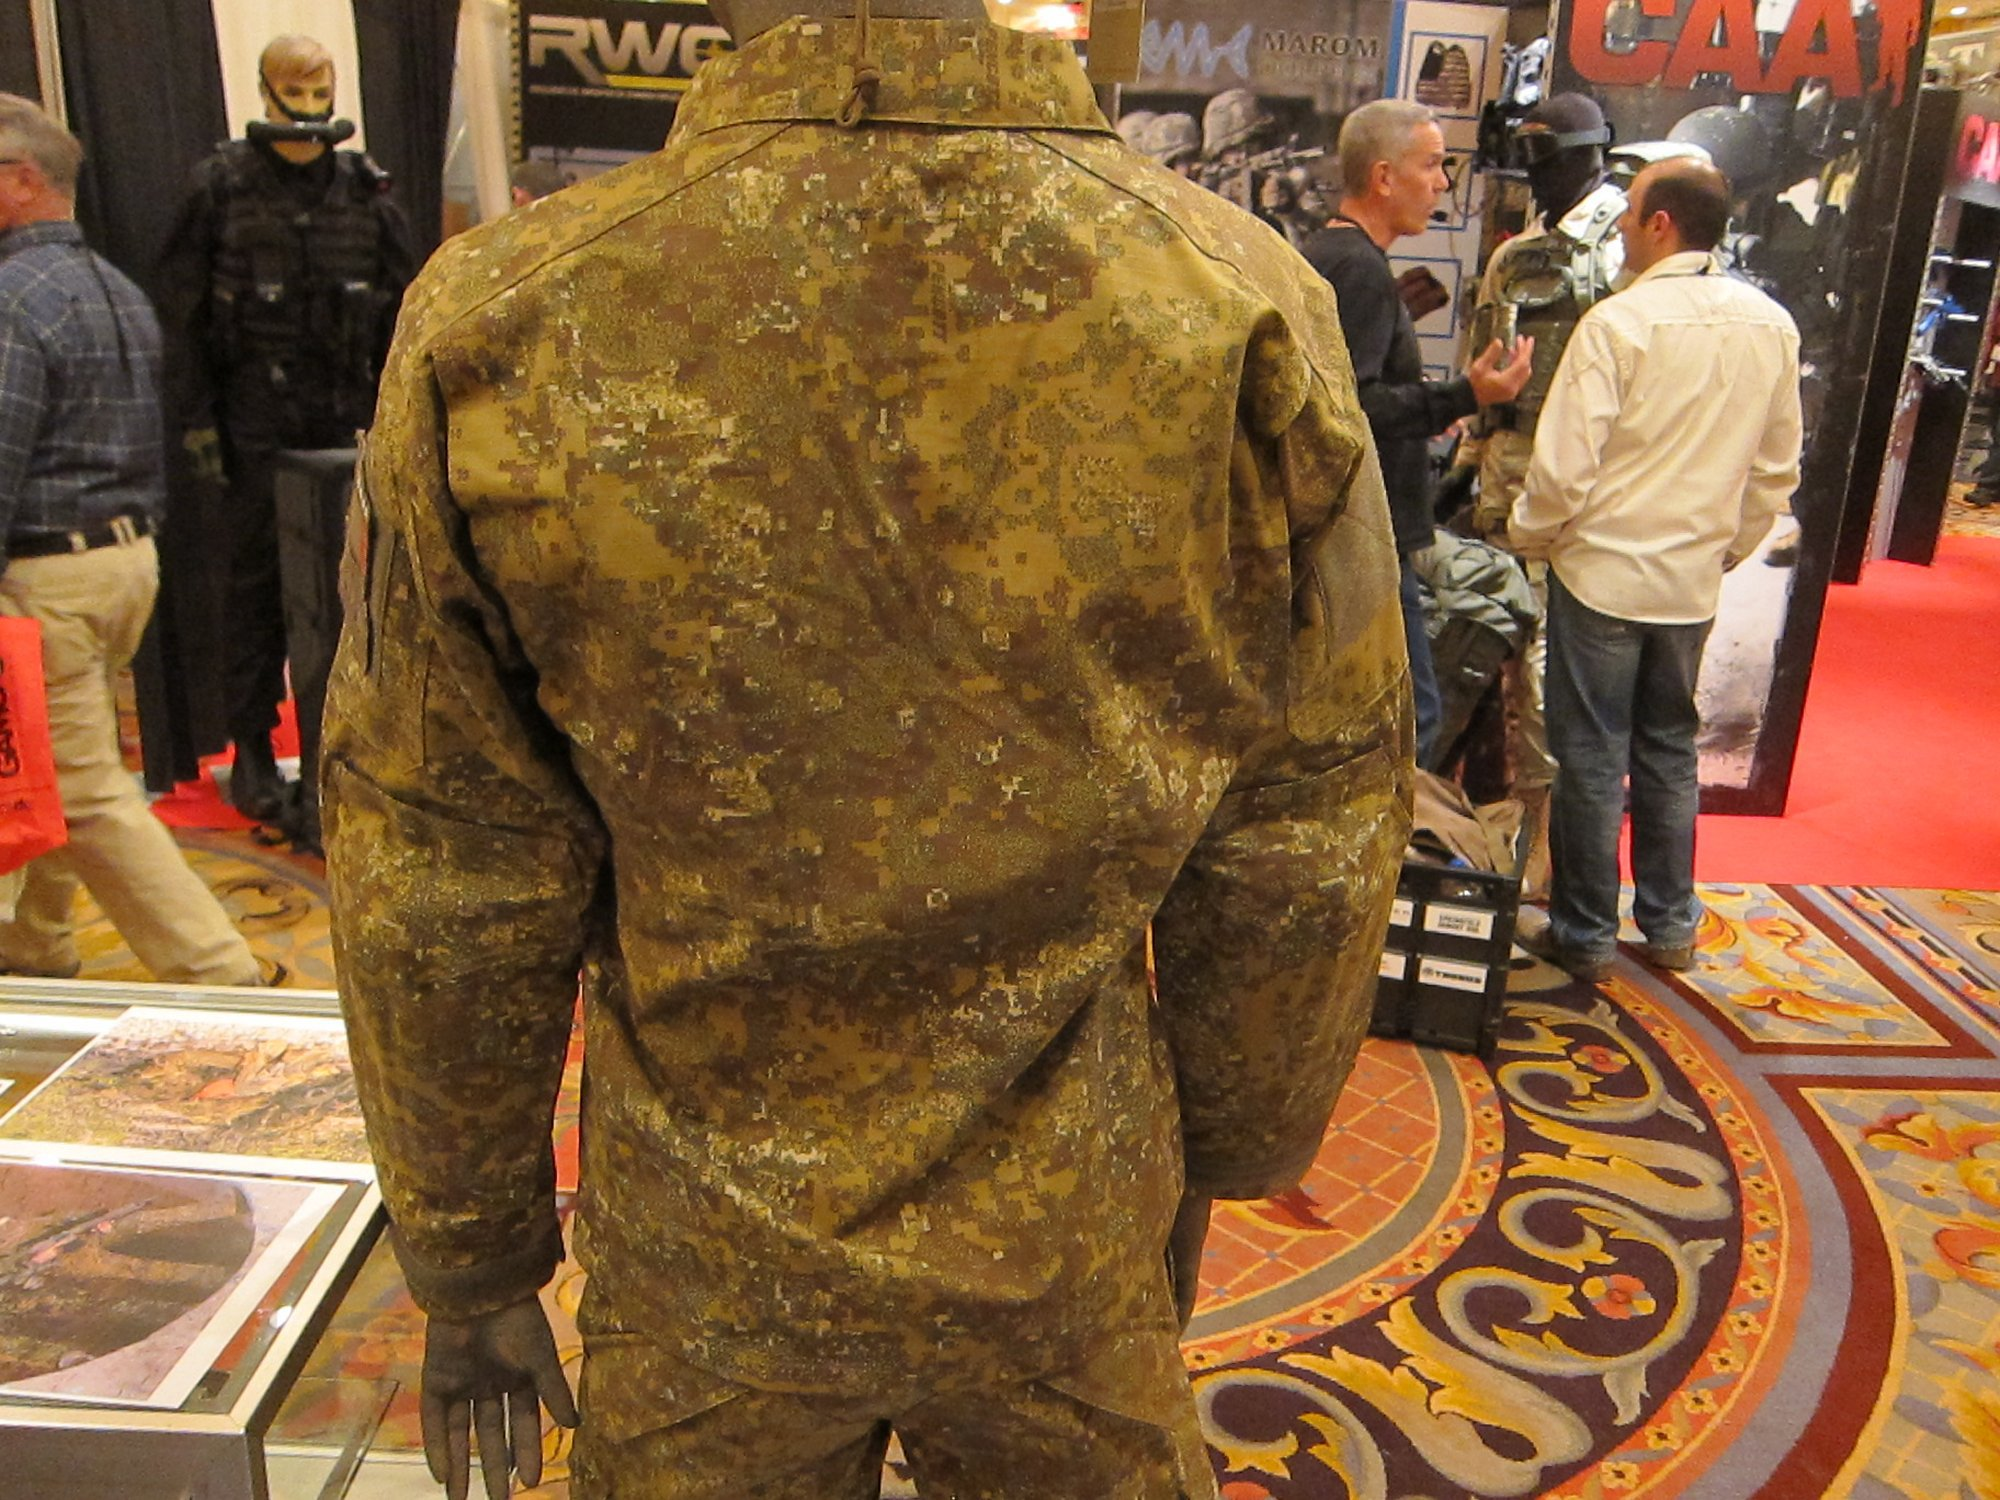 Hyde Definition PenCott Badlands SOD Gear Tactical Combat Camouflage Clothing BDU TangoDown SHOT Show 2012 1 17 2012 DefenseReview.com DR 5 SOD Gear Spectre Shirt/Battle Jacket and Para One Pants in Hyde Definition PenCott Multi Environment Digital Combat Camo (Camouflage) Patterns at SHOT Show 2012: High Tech Combat Clothing (BDU Type) for Military Special Operations Forces (SOF) and Civilian Tactical Shooting